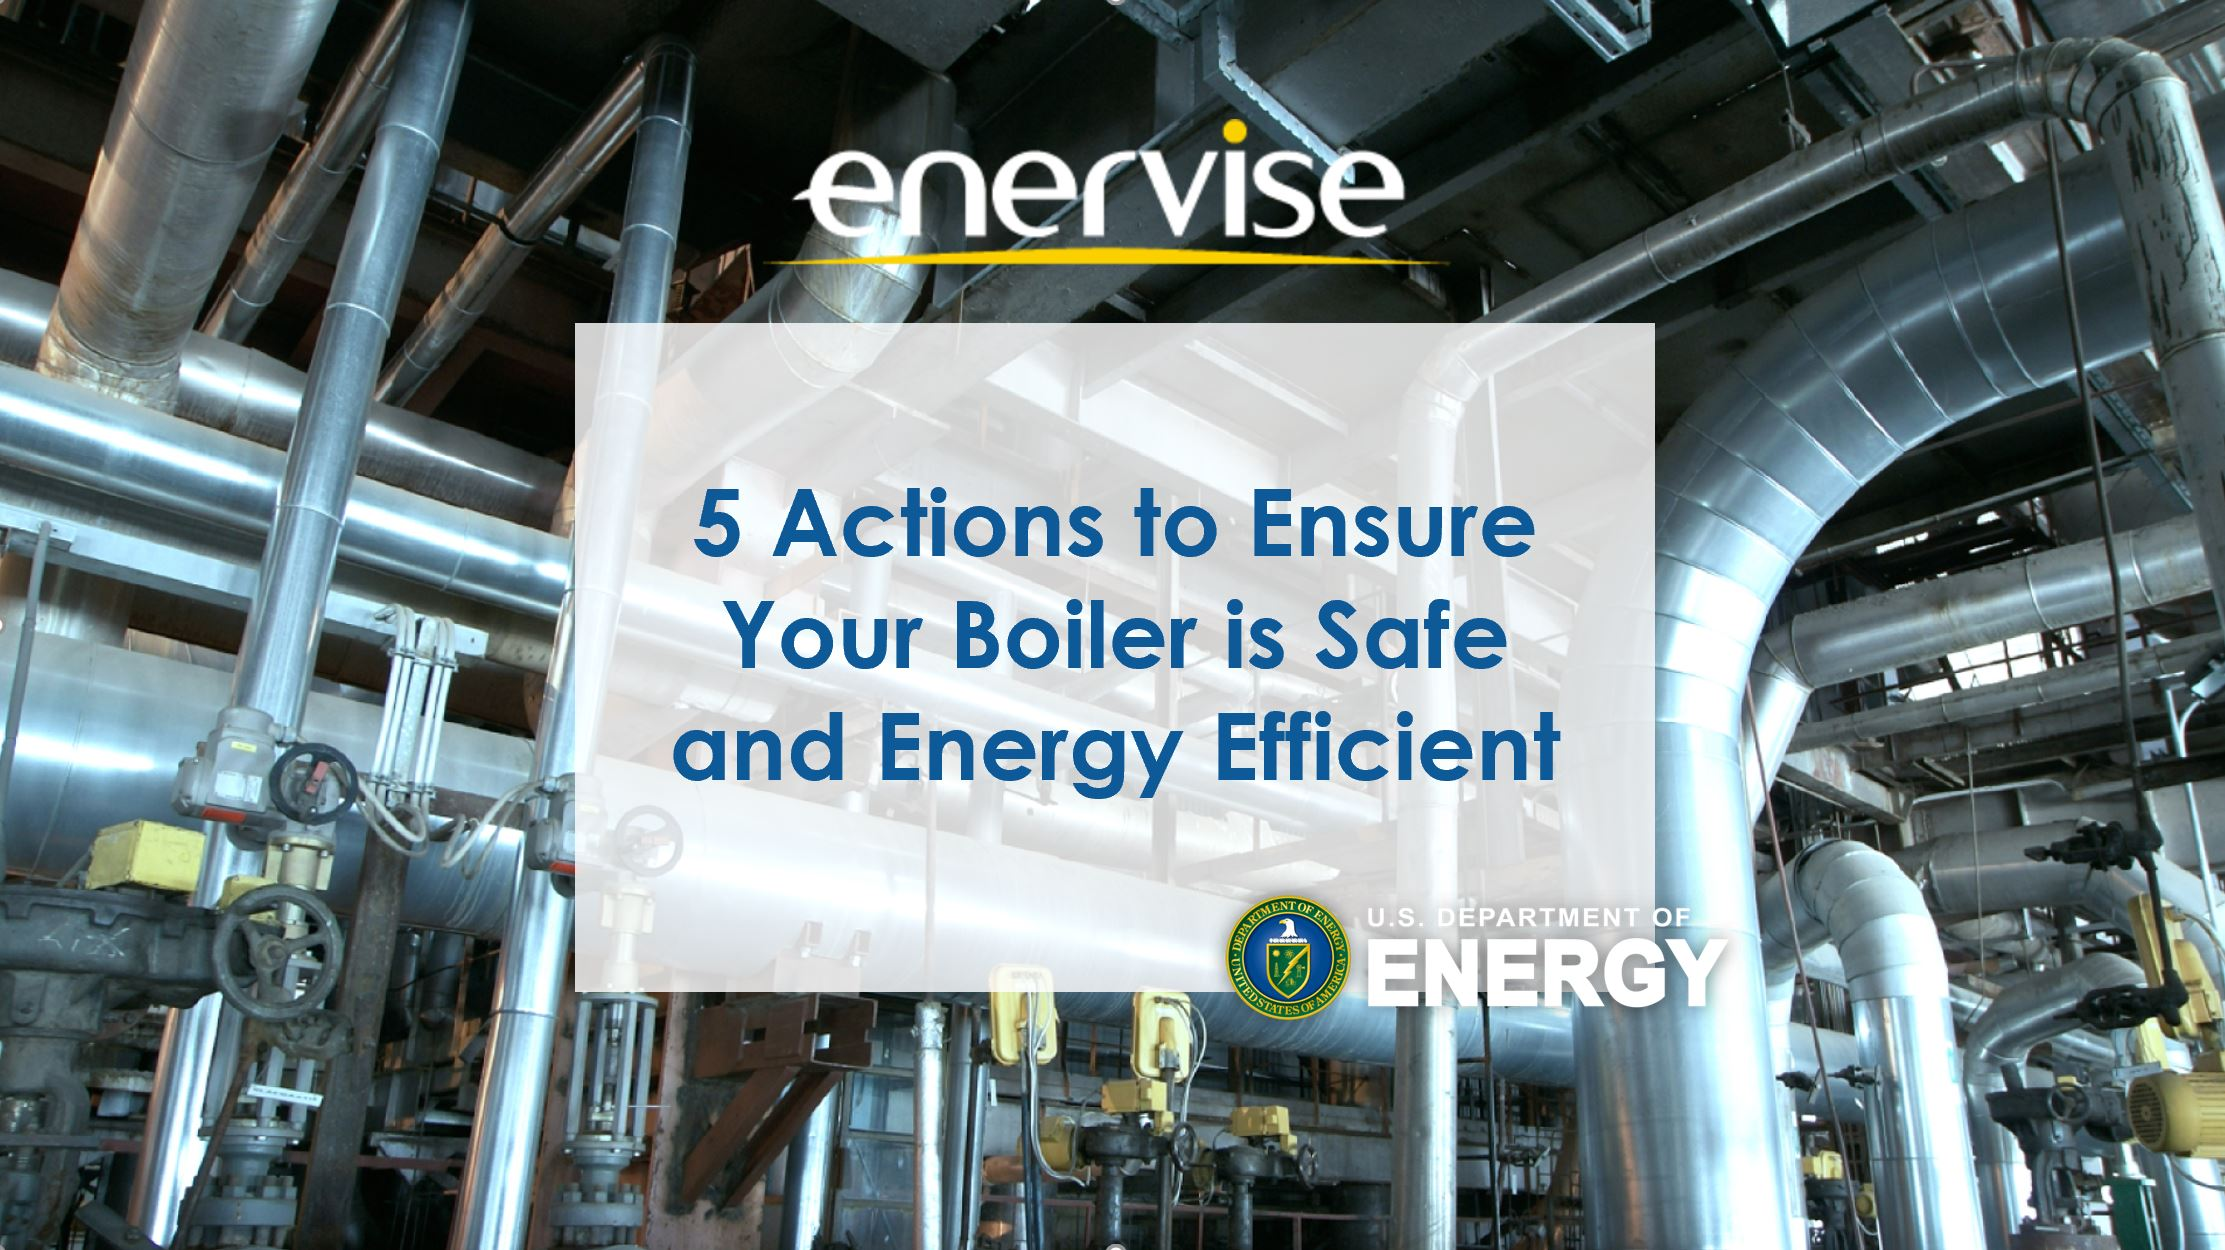 5 Actions to Ensure Your Building's Boiler is Safe and Energy Efficient